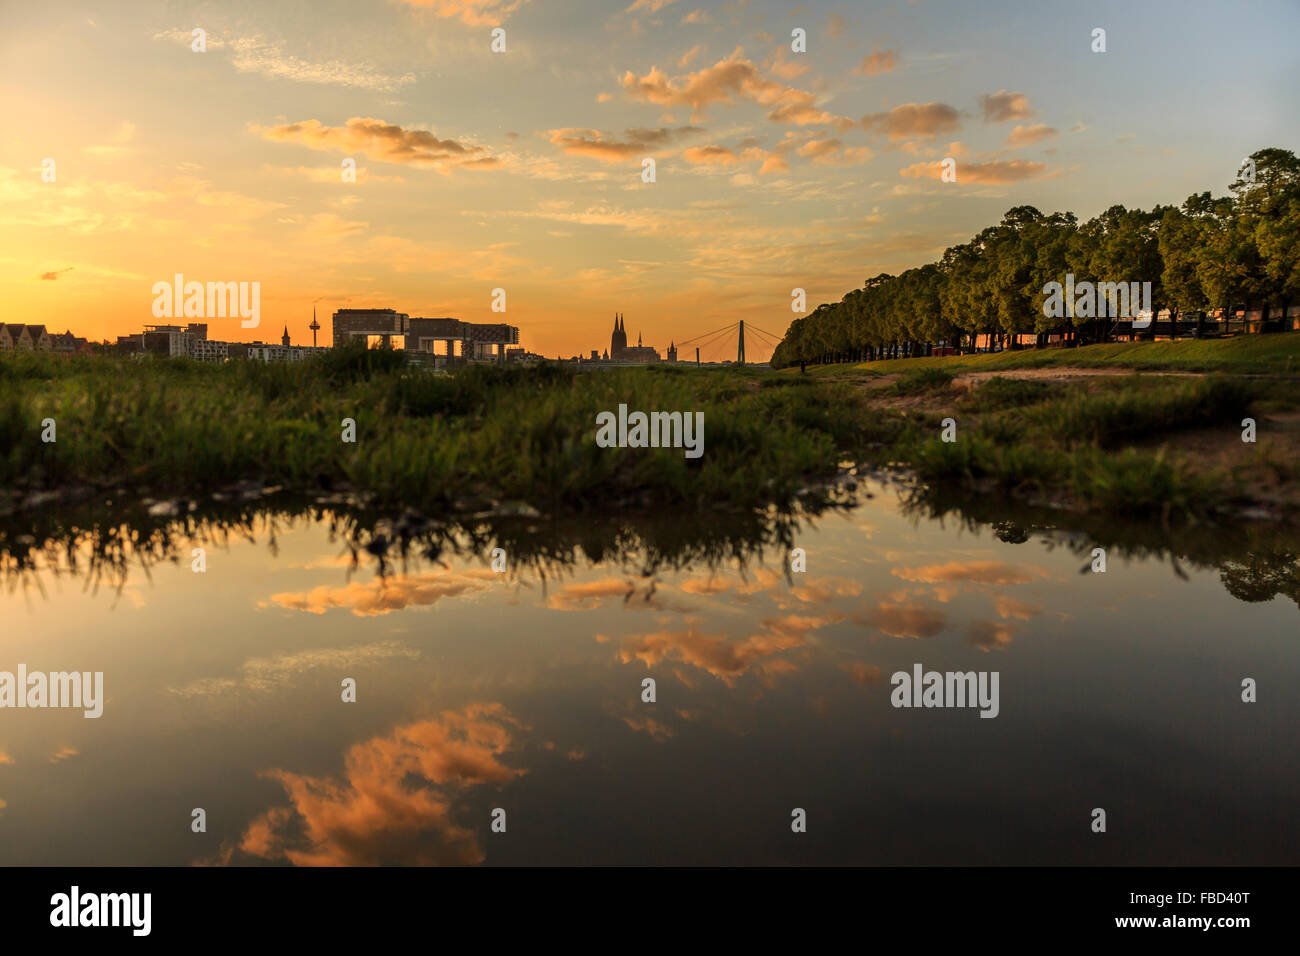 Banks of River Rhine, Cologne, Germany - Stock Image